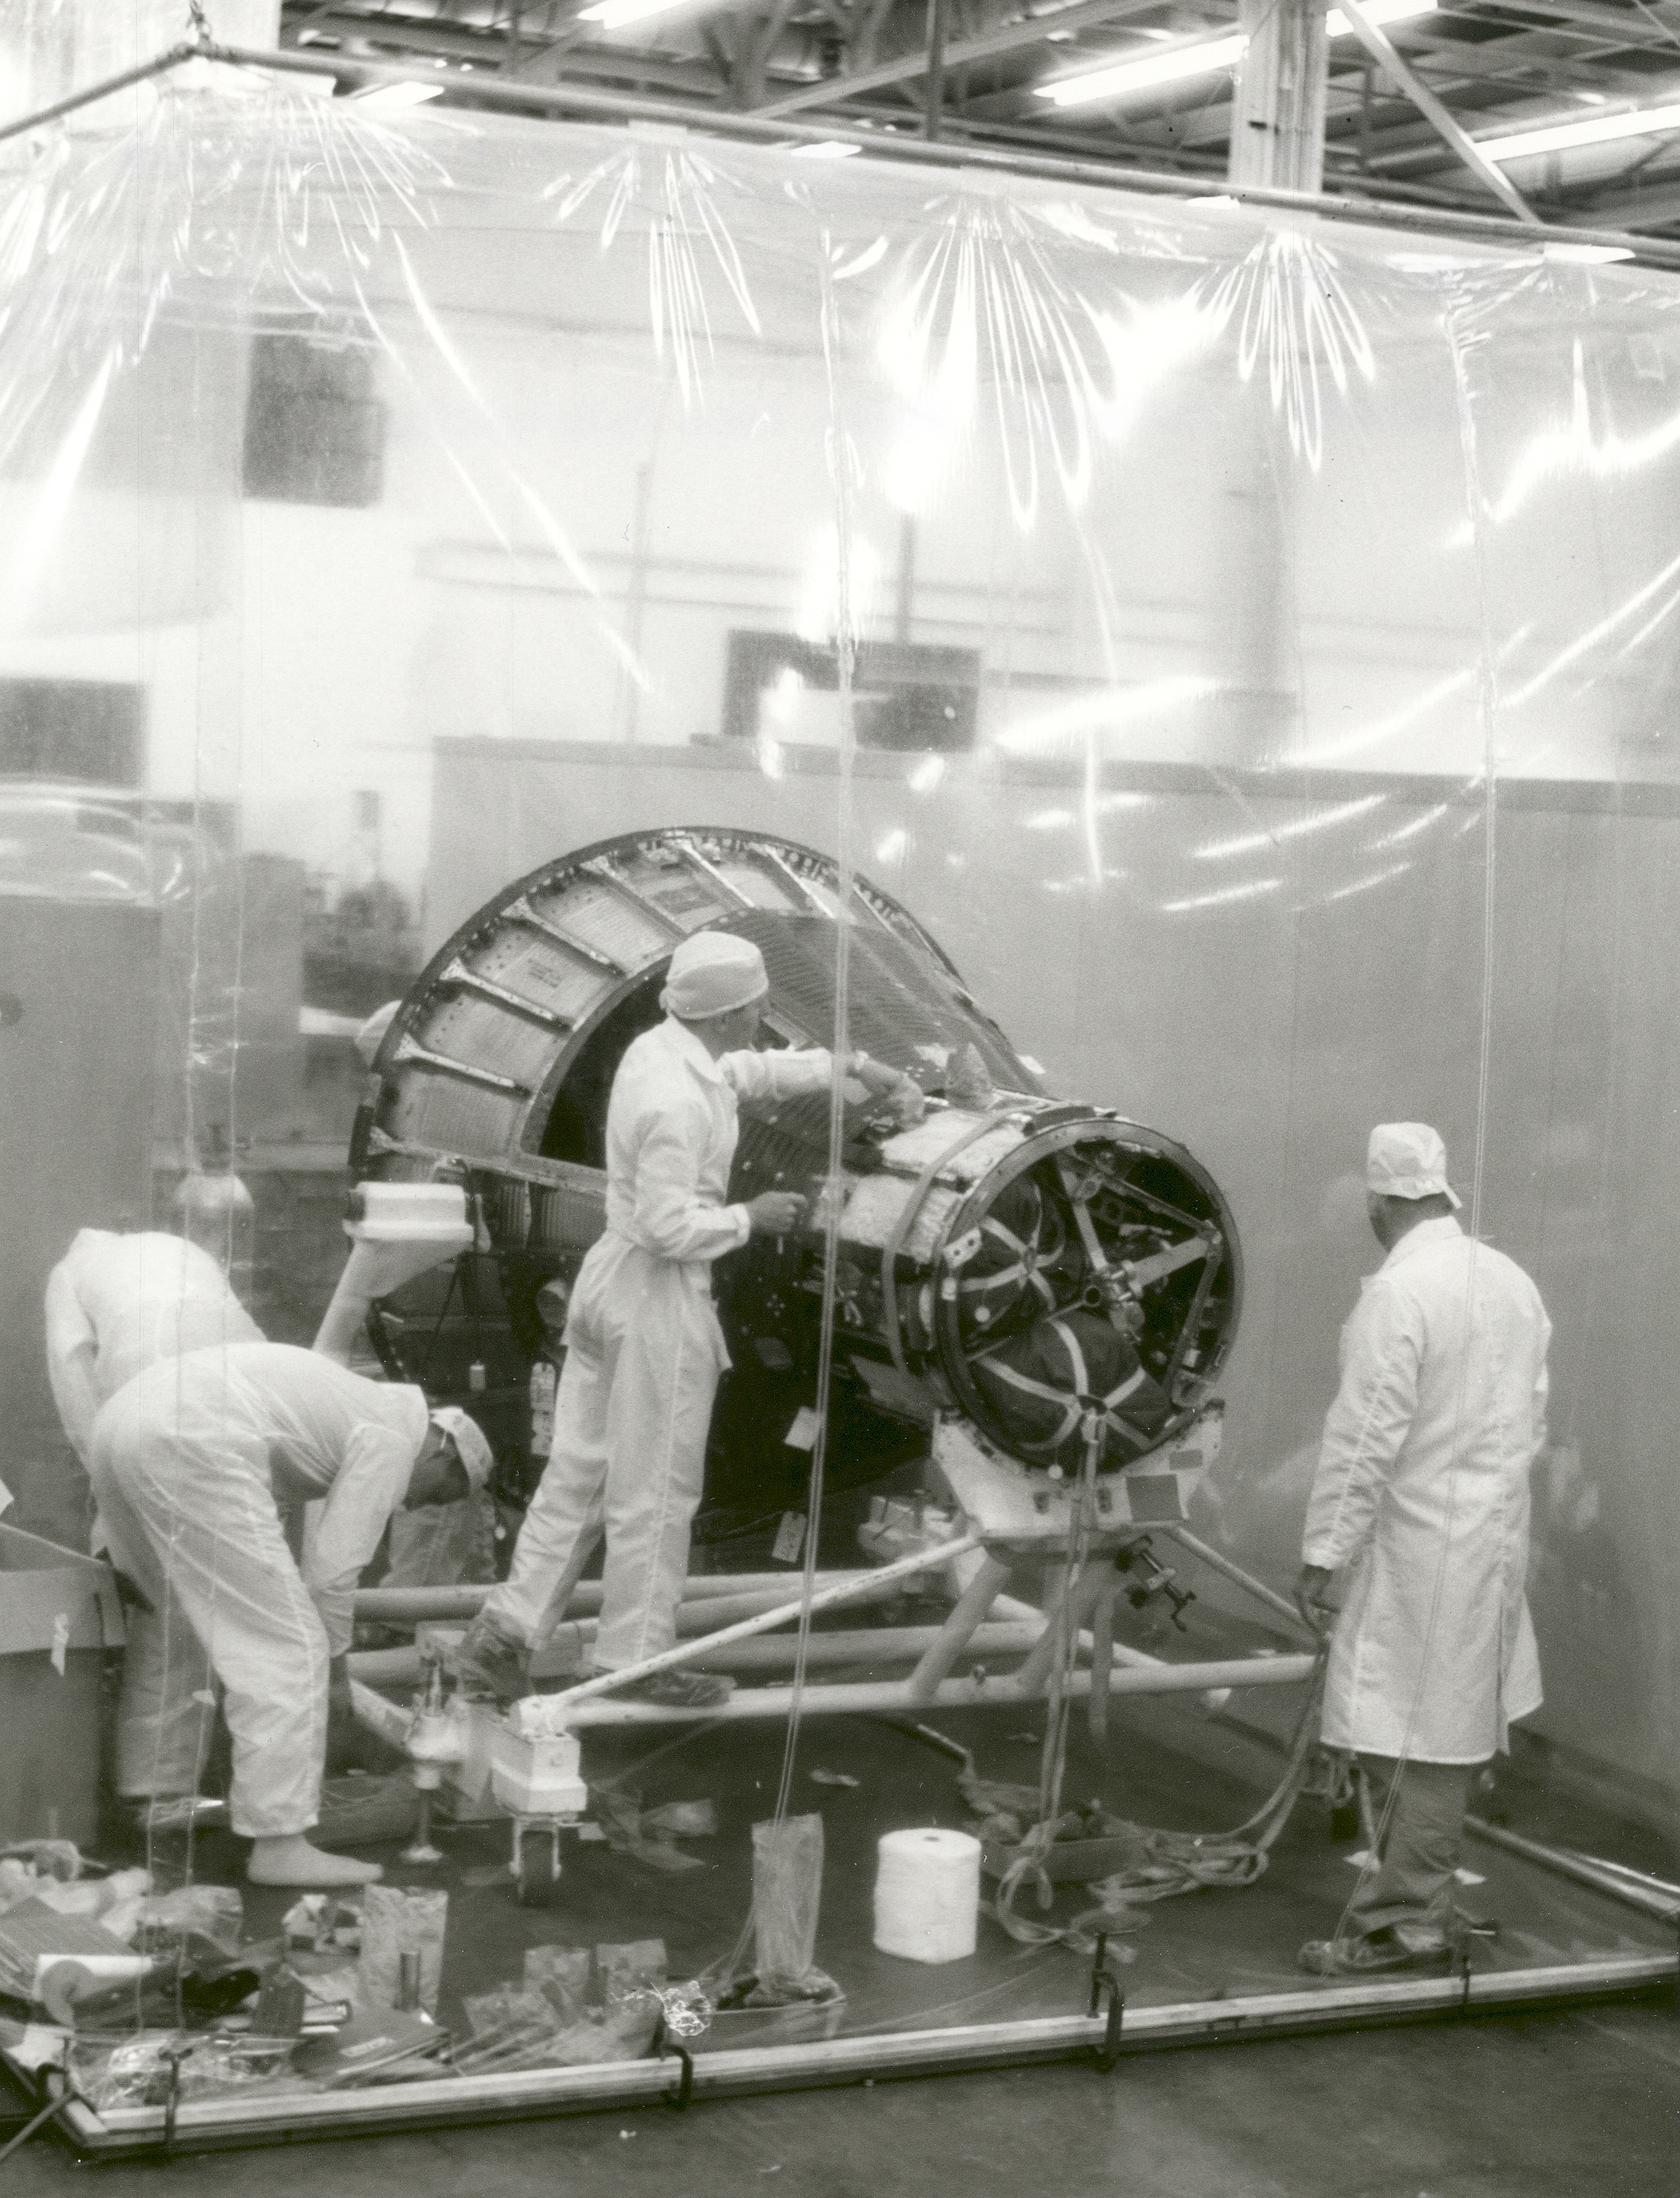 Spacecraft production in clean room at McDonnell Aircraft, St. Louis, 1960.